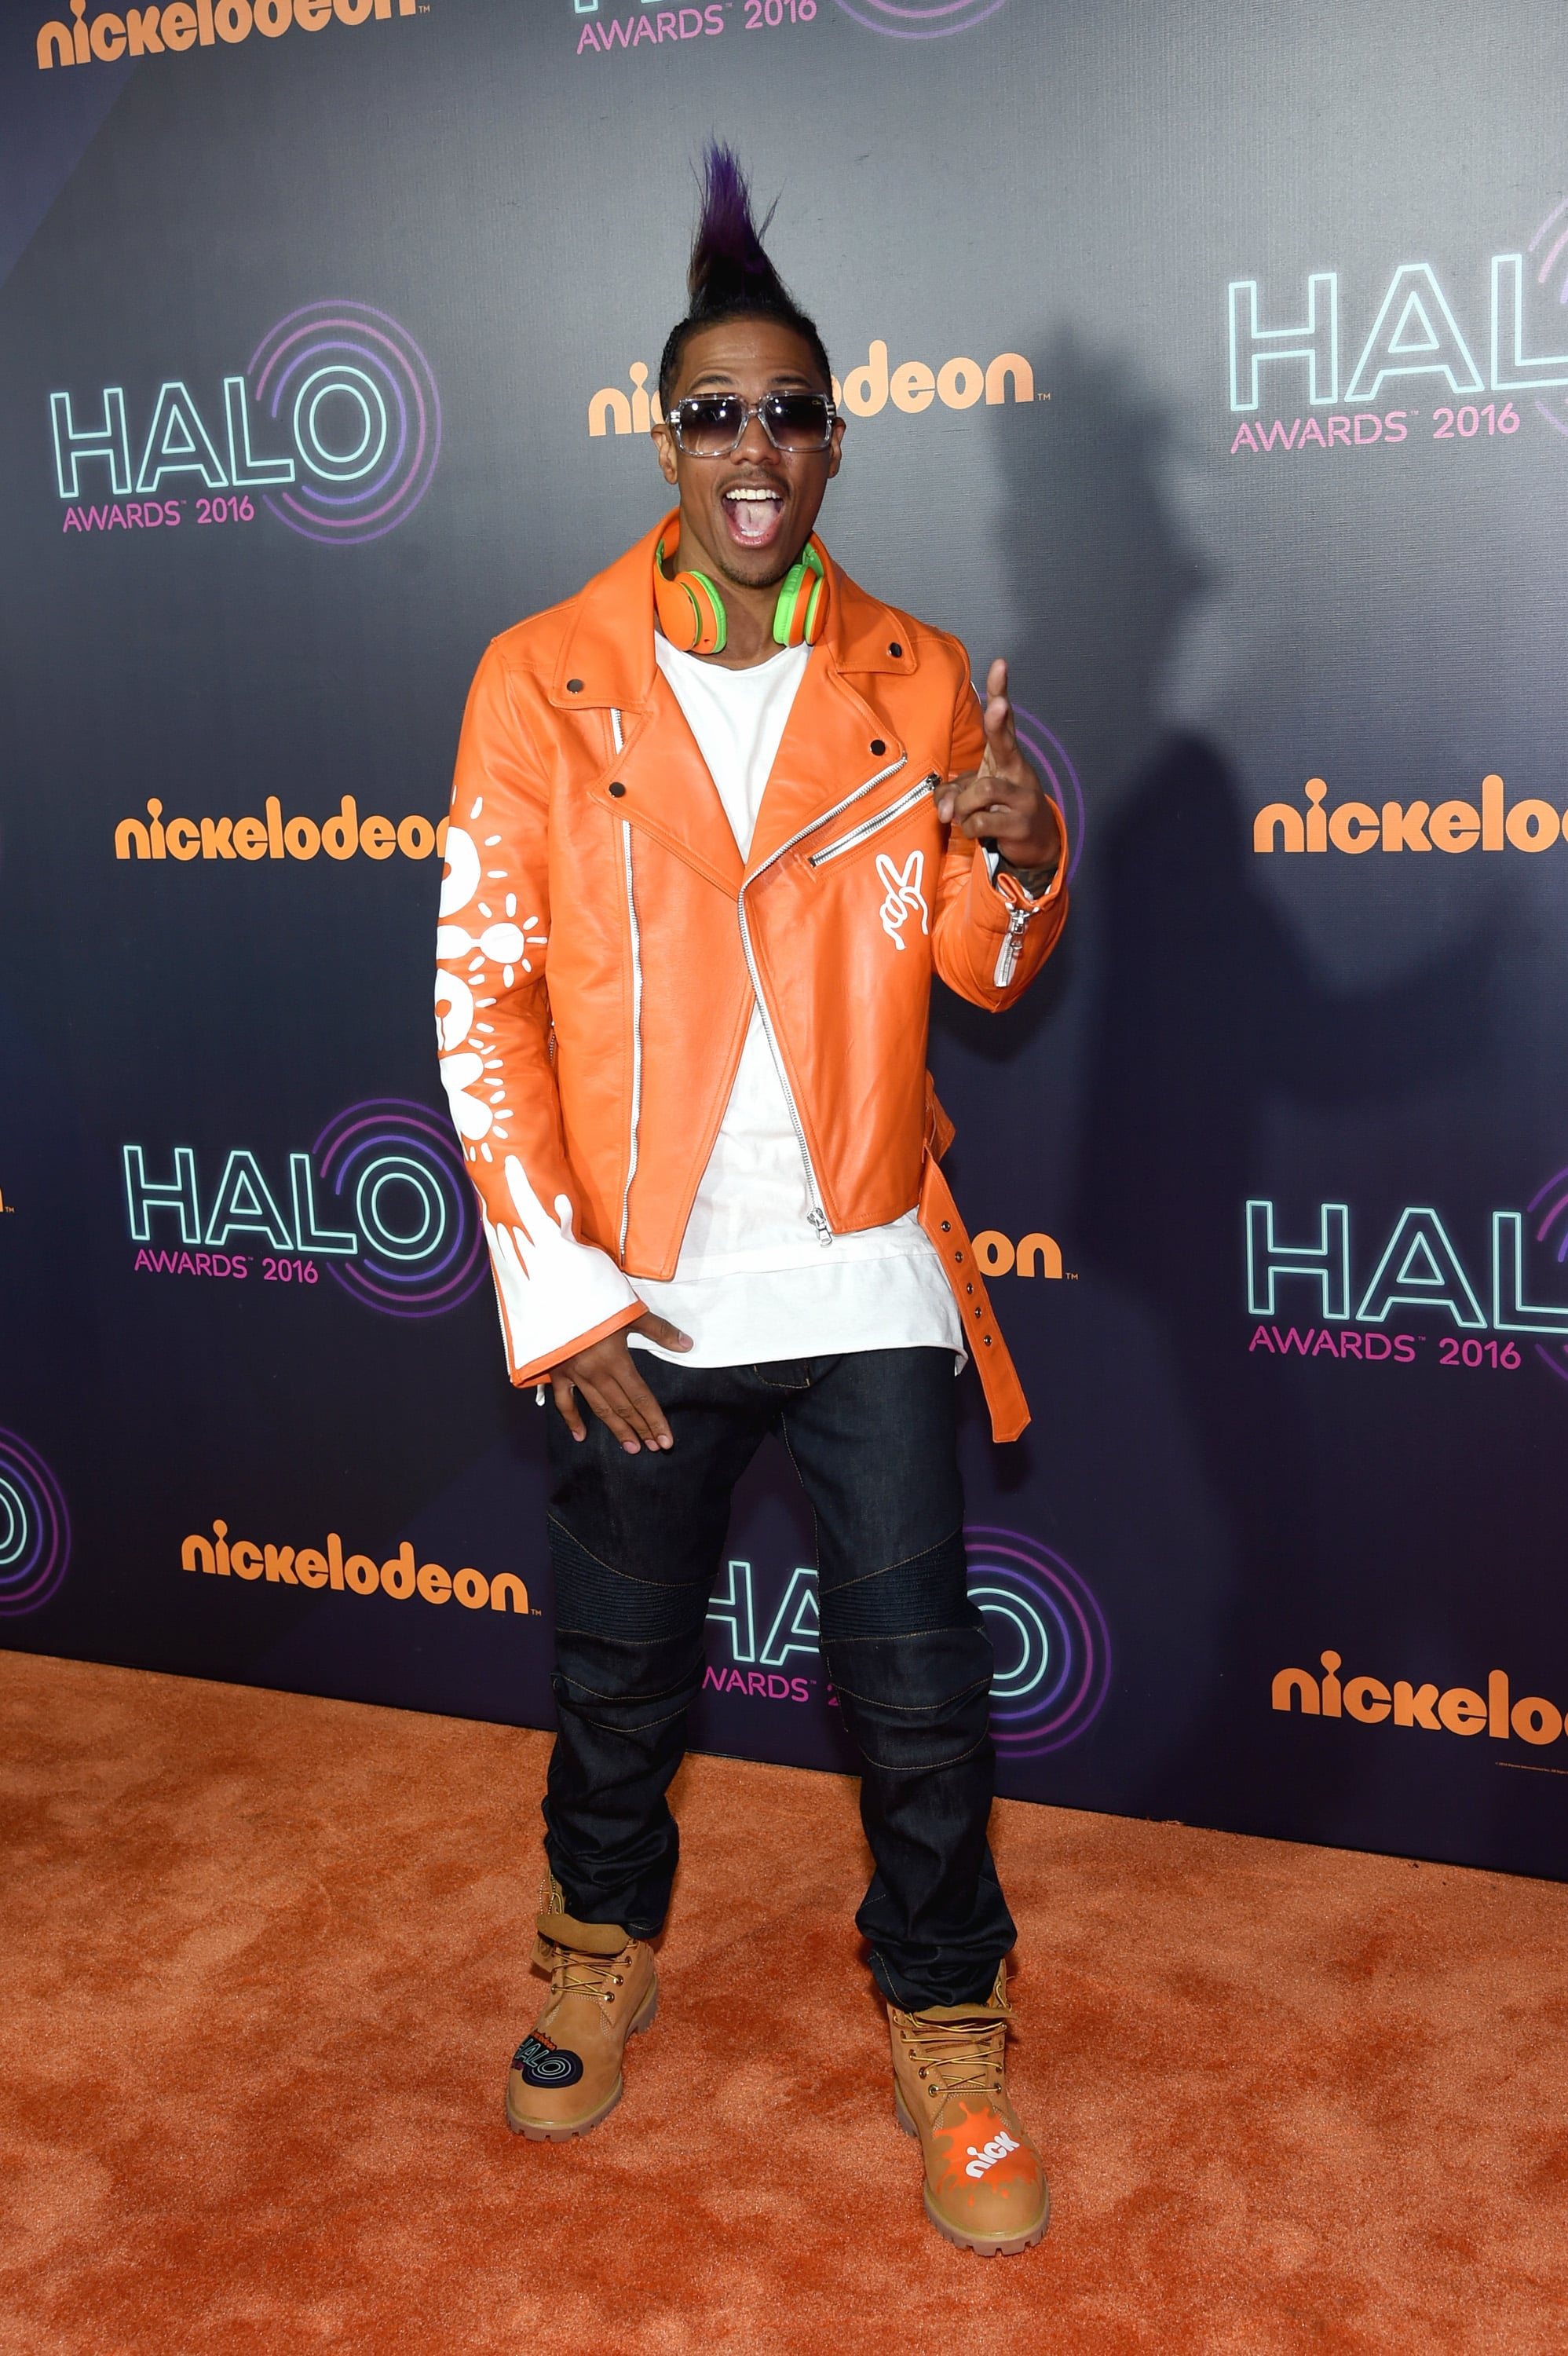 Nick Cannon For Nickelodeon The Hollywood Gossip